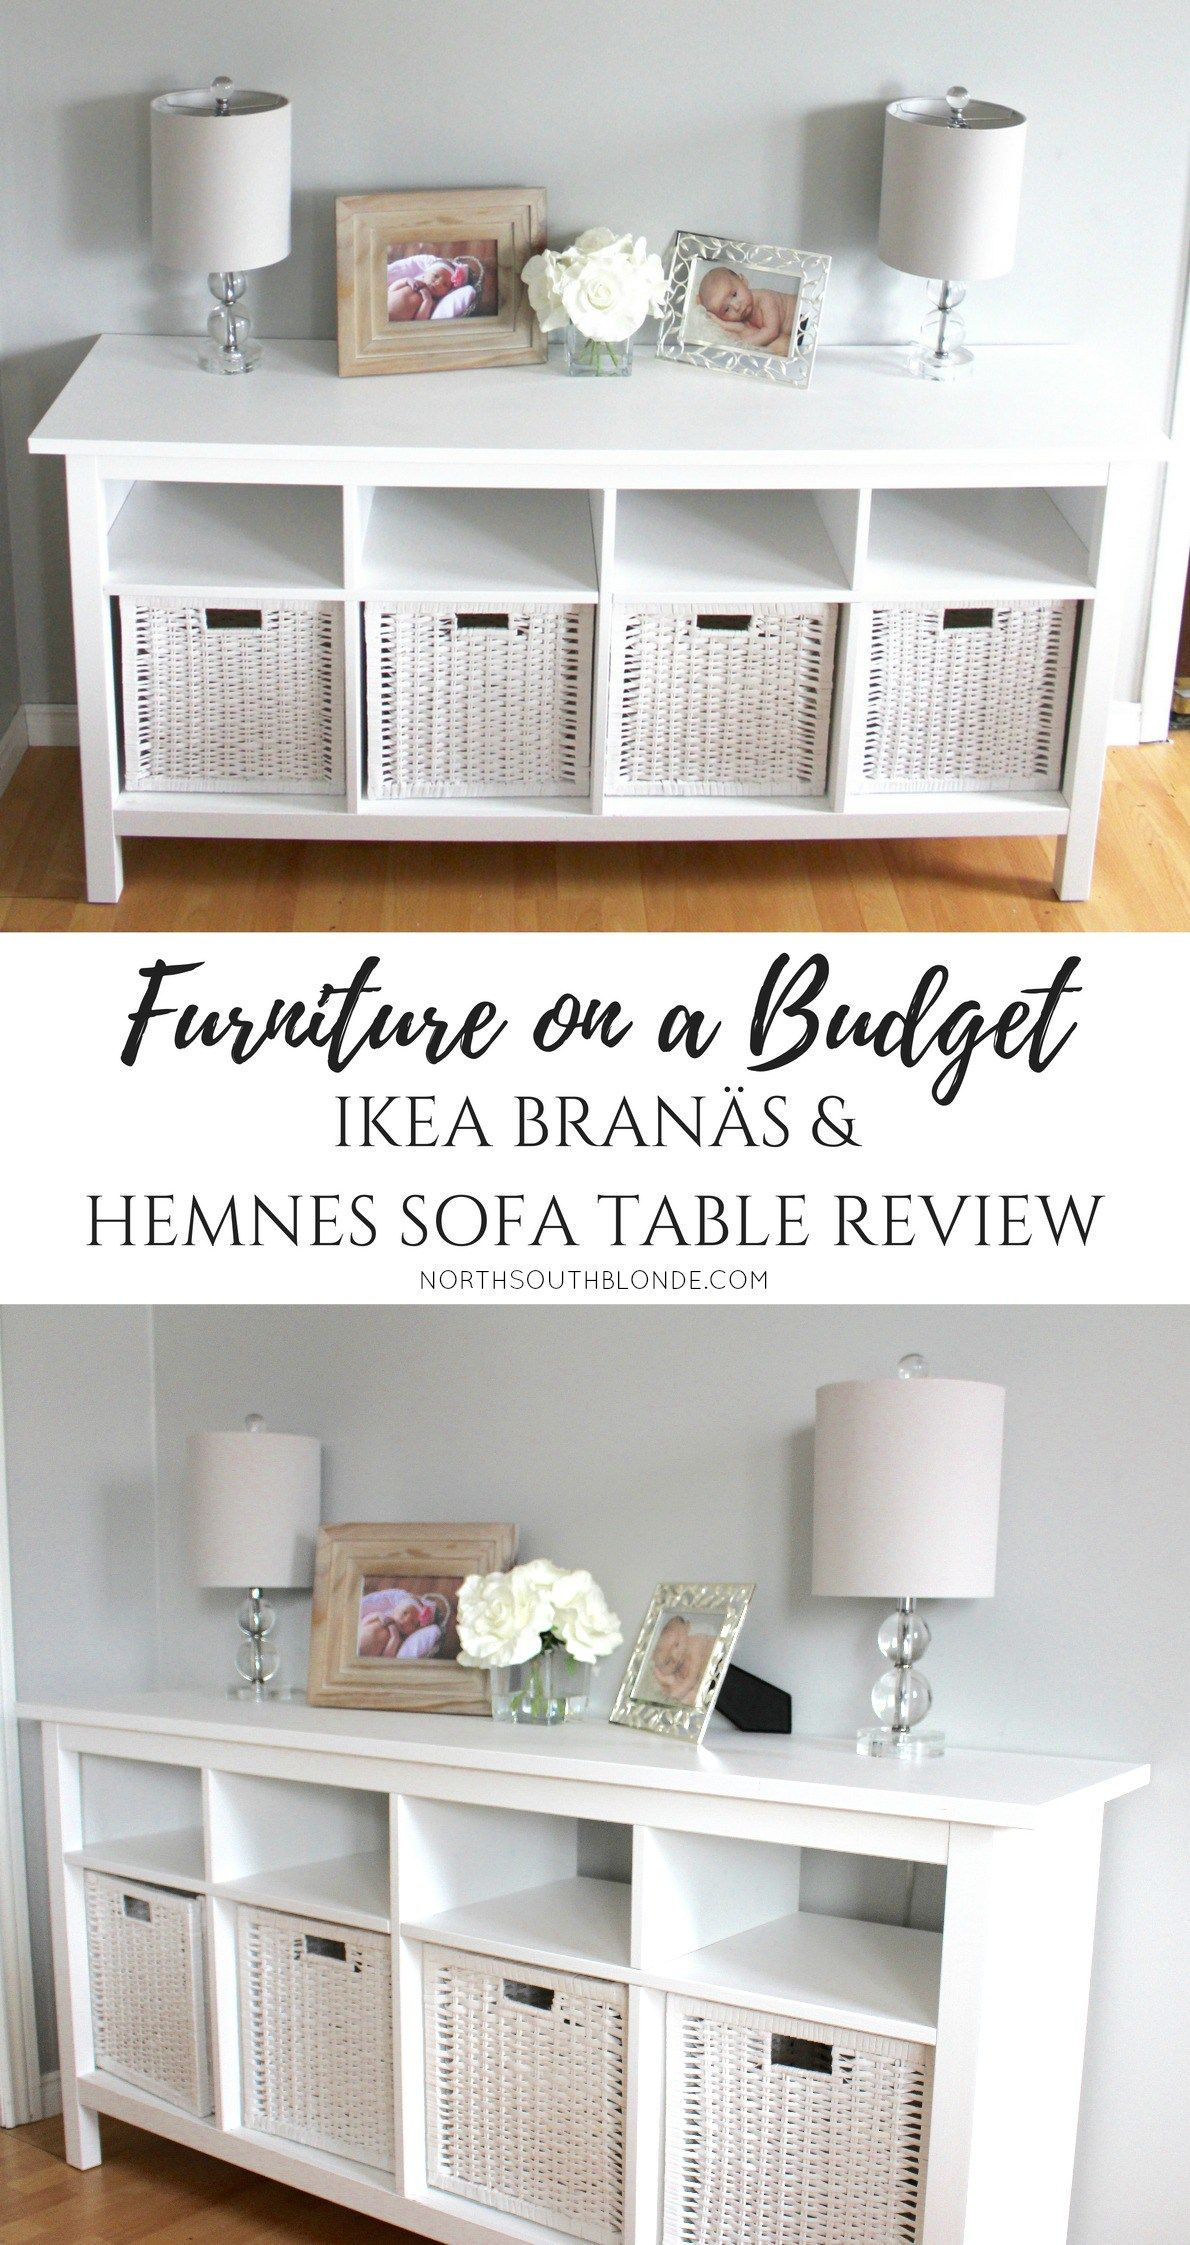 Furniture On A Budget Ikea Branas And Hemnes Sofa Table Review Home Decor Furniture Decor